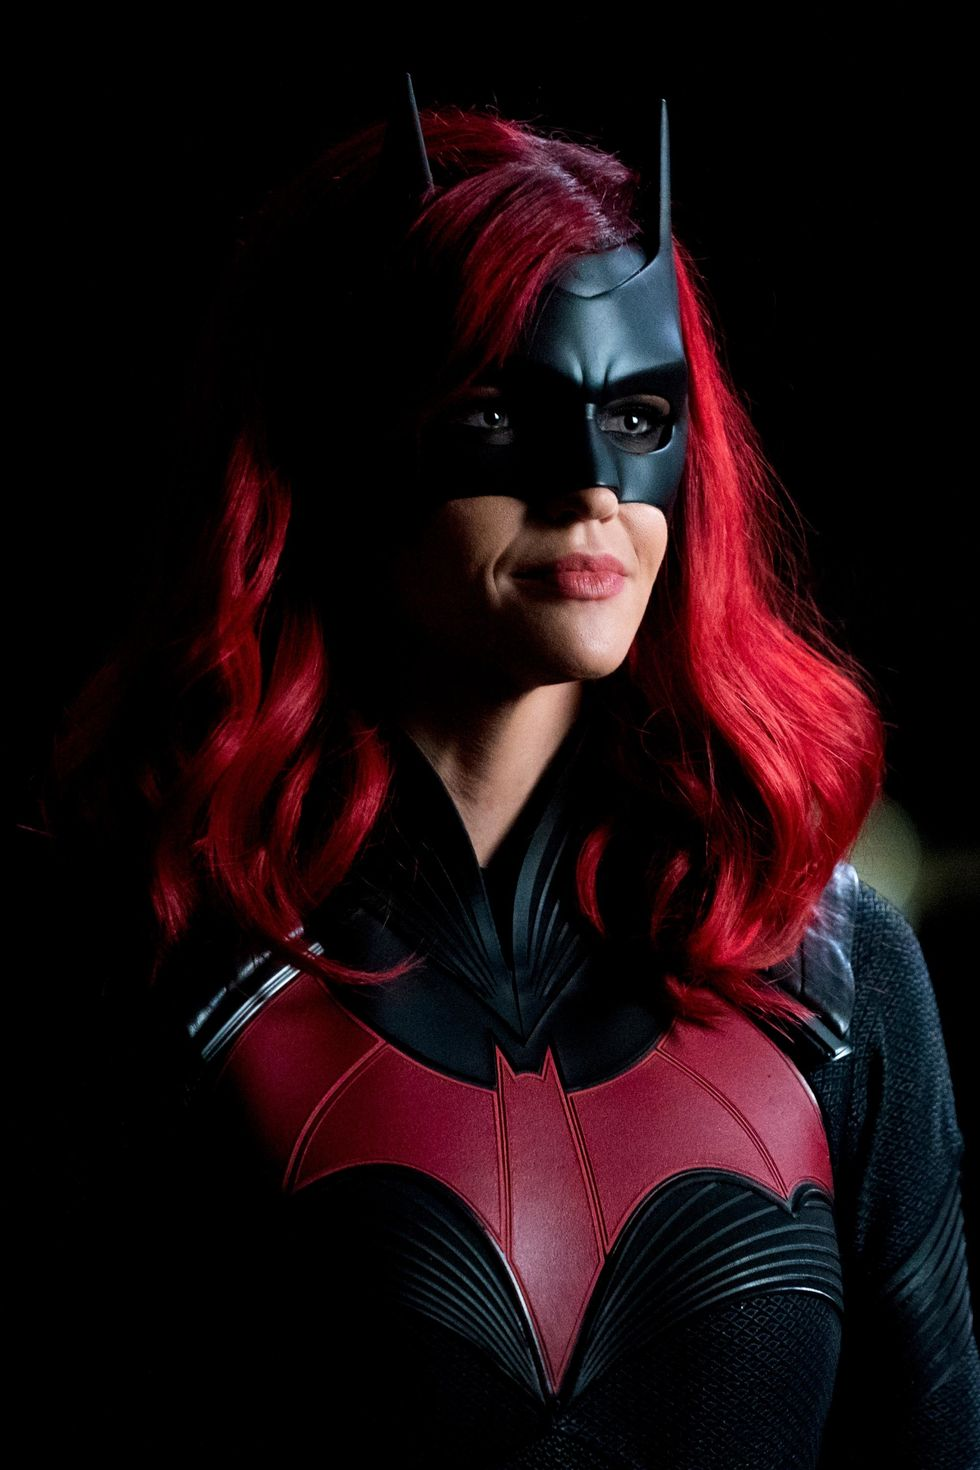 Ruby Rose as Batwoman on The CW TV series.